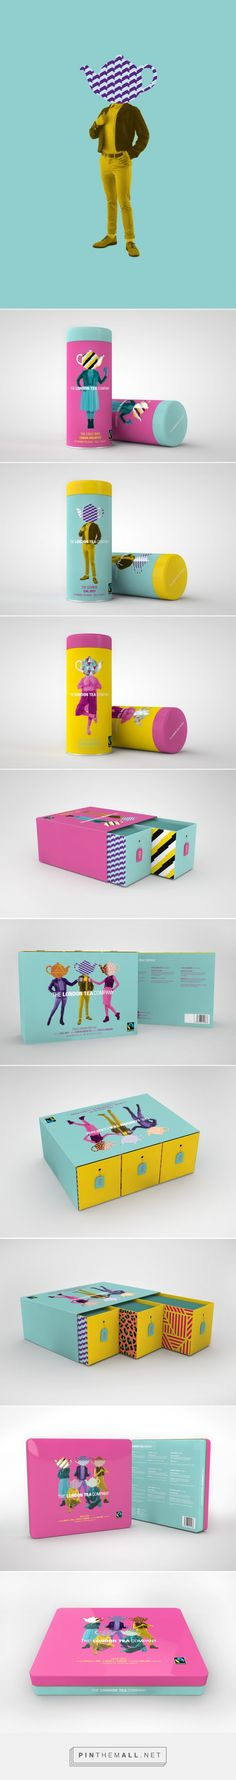 London Tea Company Gift Packaging   http://www.packagingoftheworld.com/2015/11/london-tea-company-gift-packaging.html - created via https://pinthemall.net